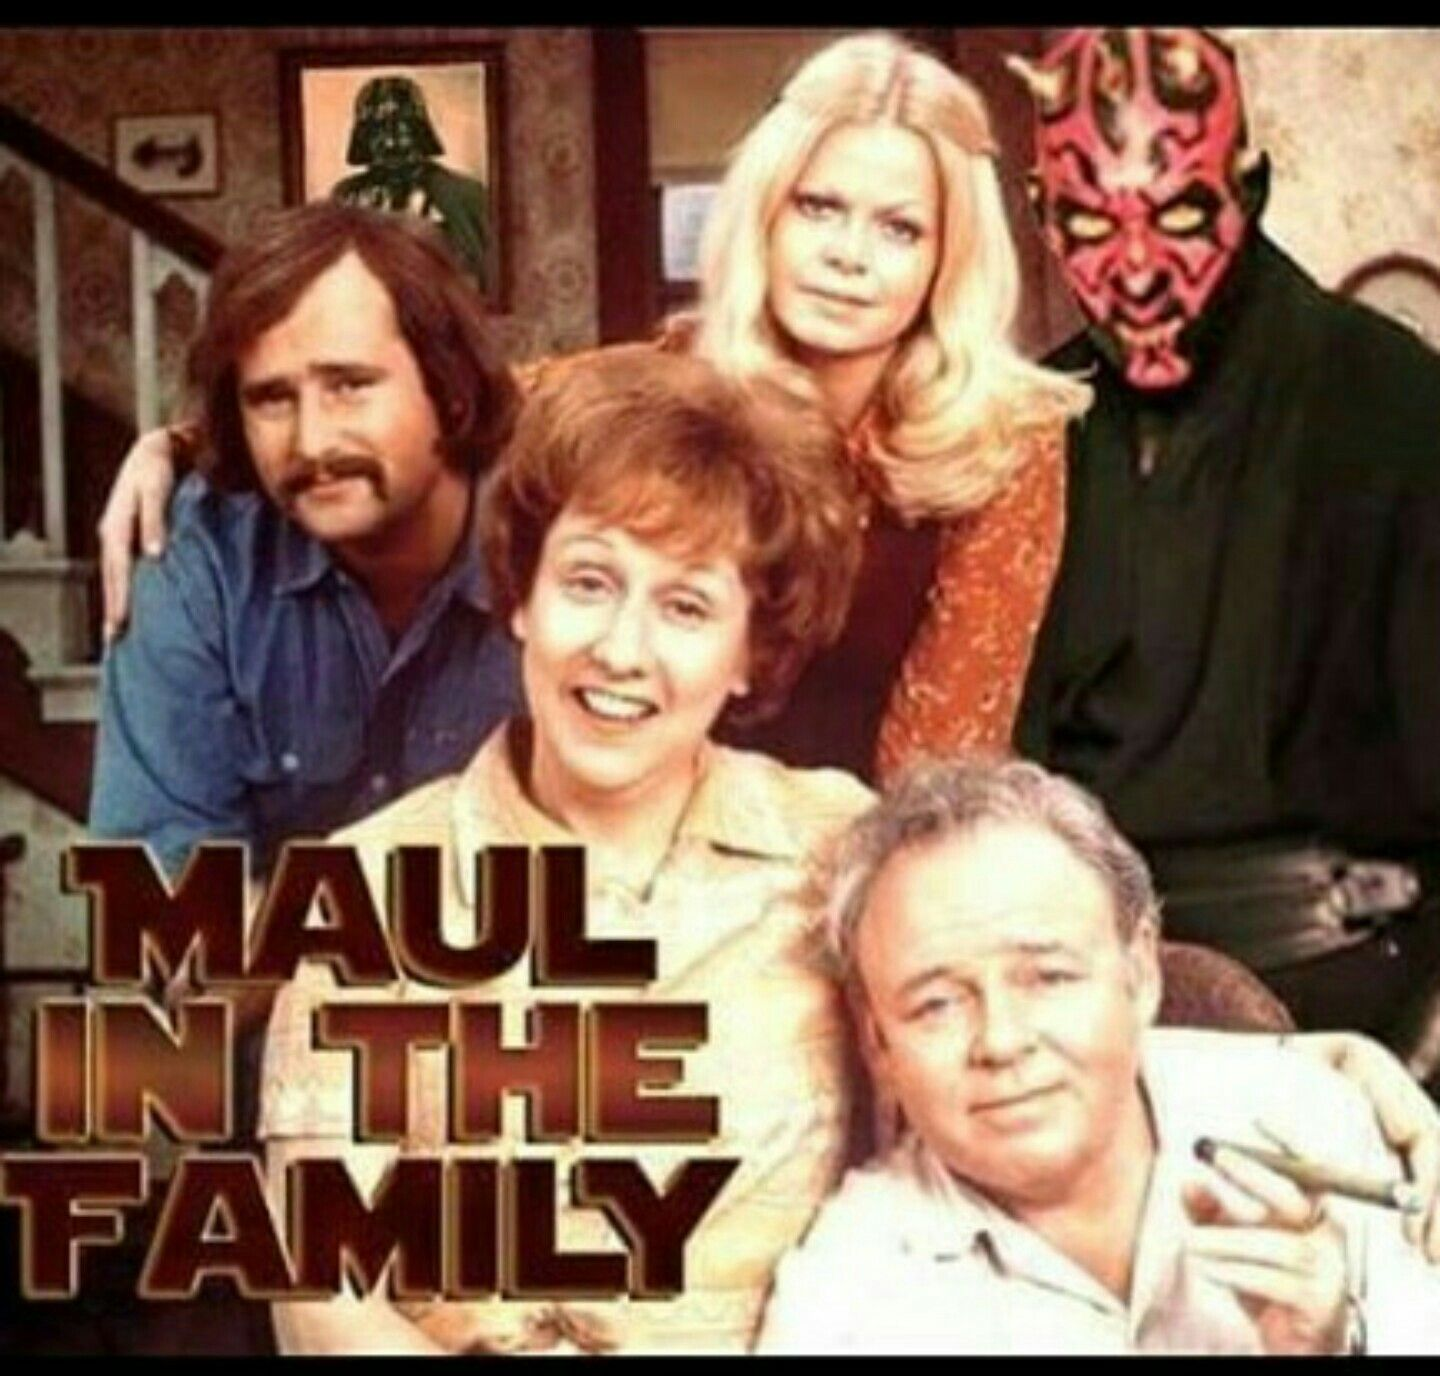 Star wars maul in the family